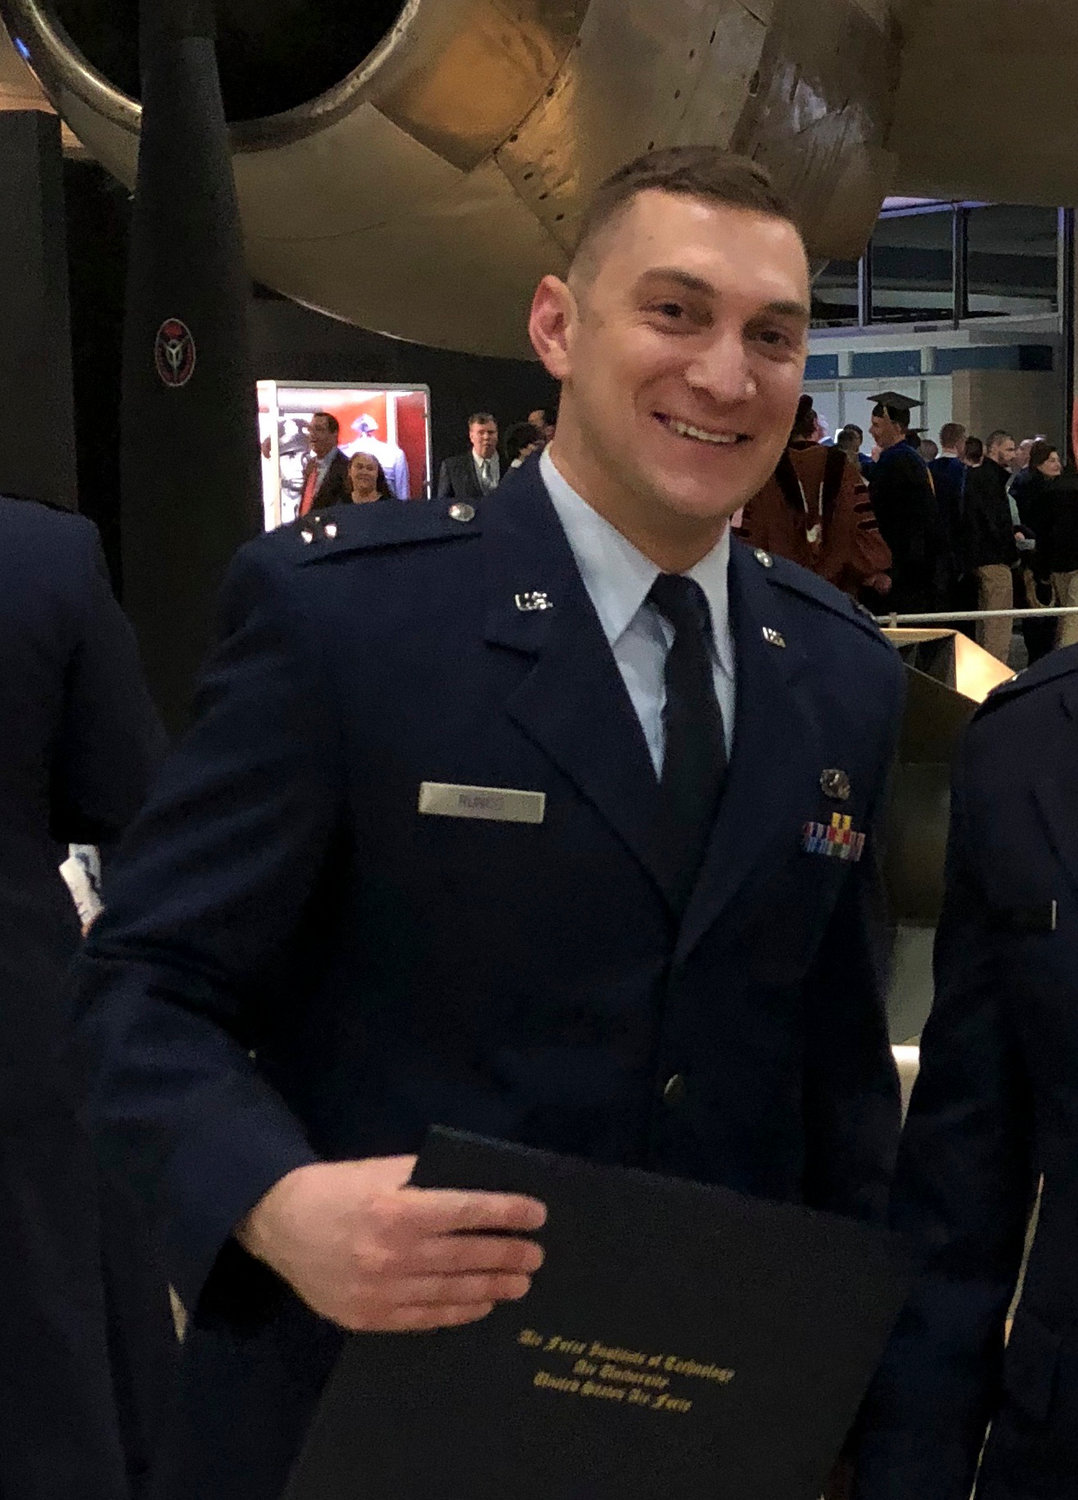 Capt. John Runco, of Atlantic Beach, was given his Master of Science degree in aeronautical engineering from the Air Force Institute of Technology in Ohio last month.